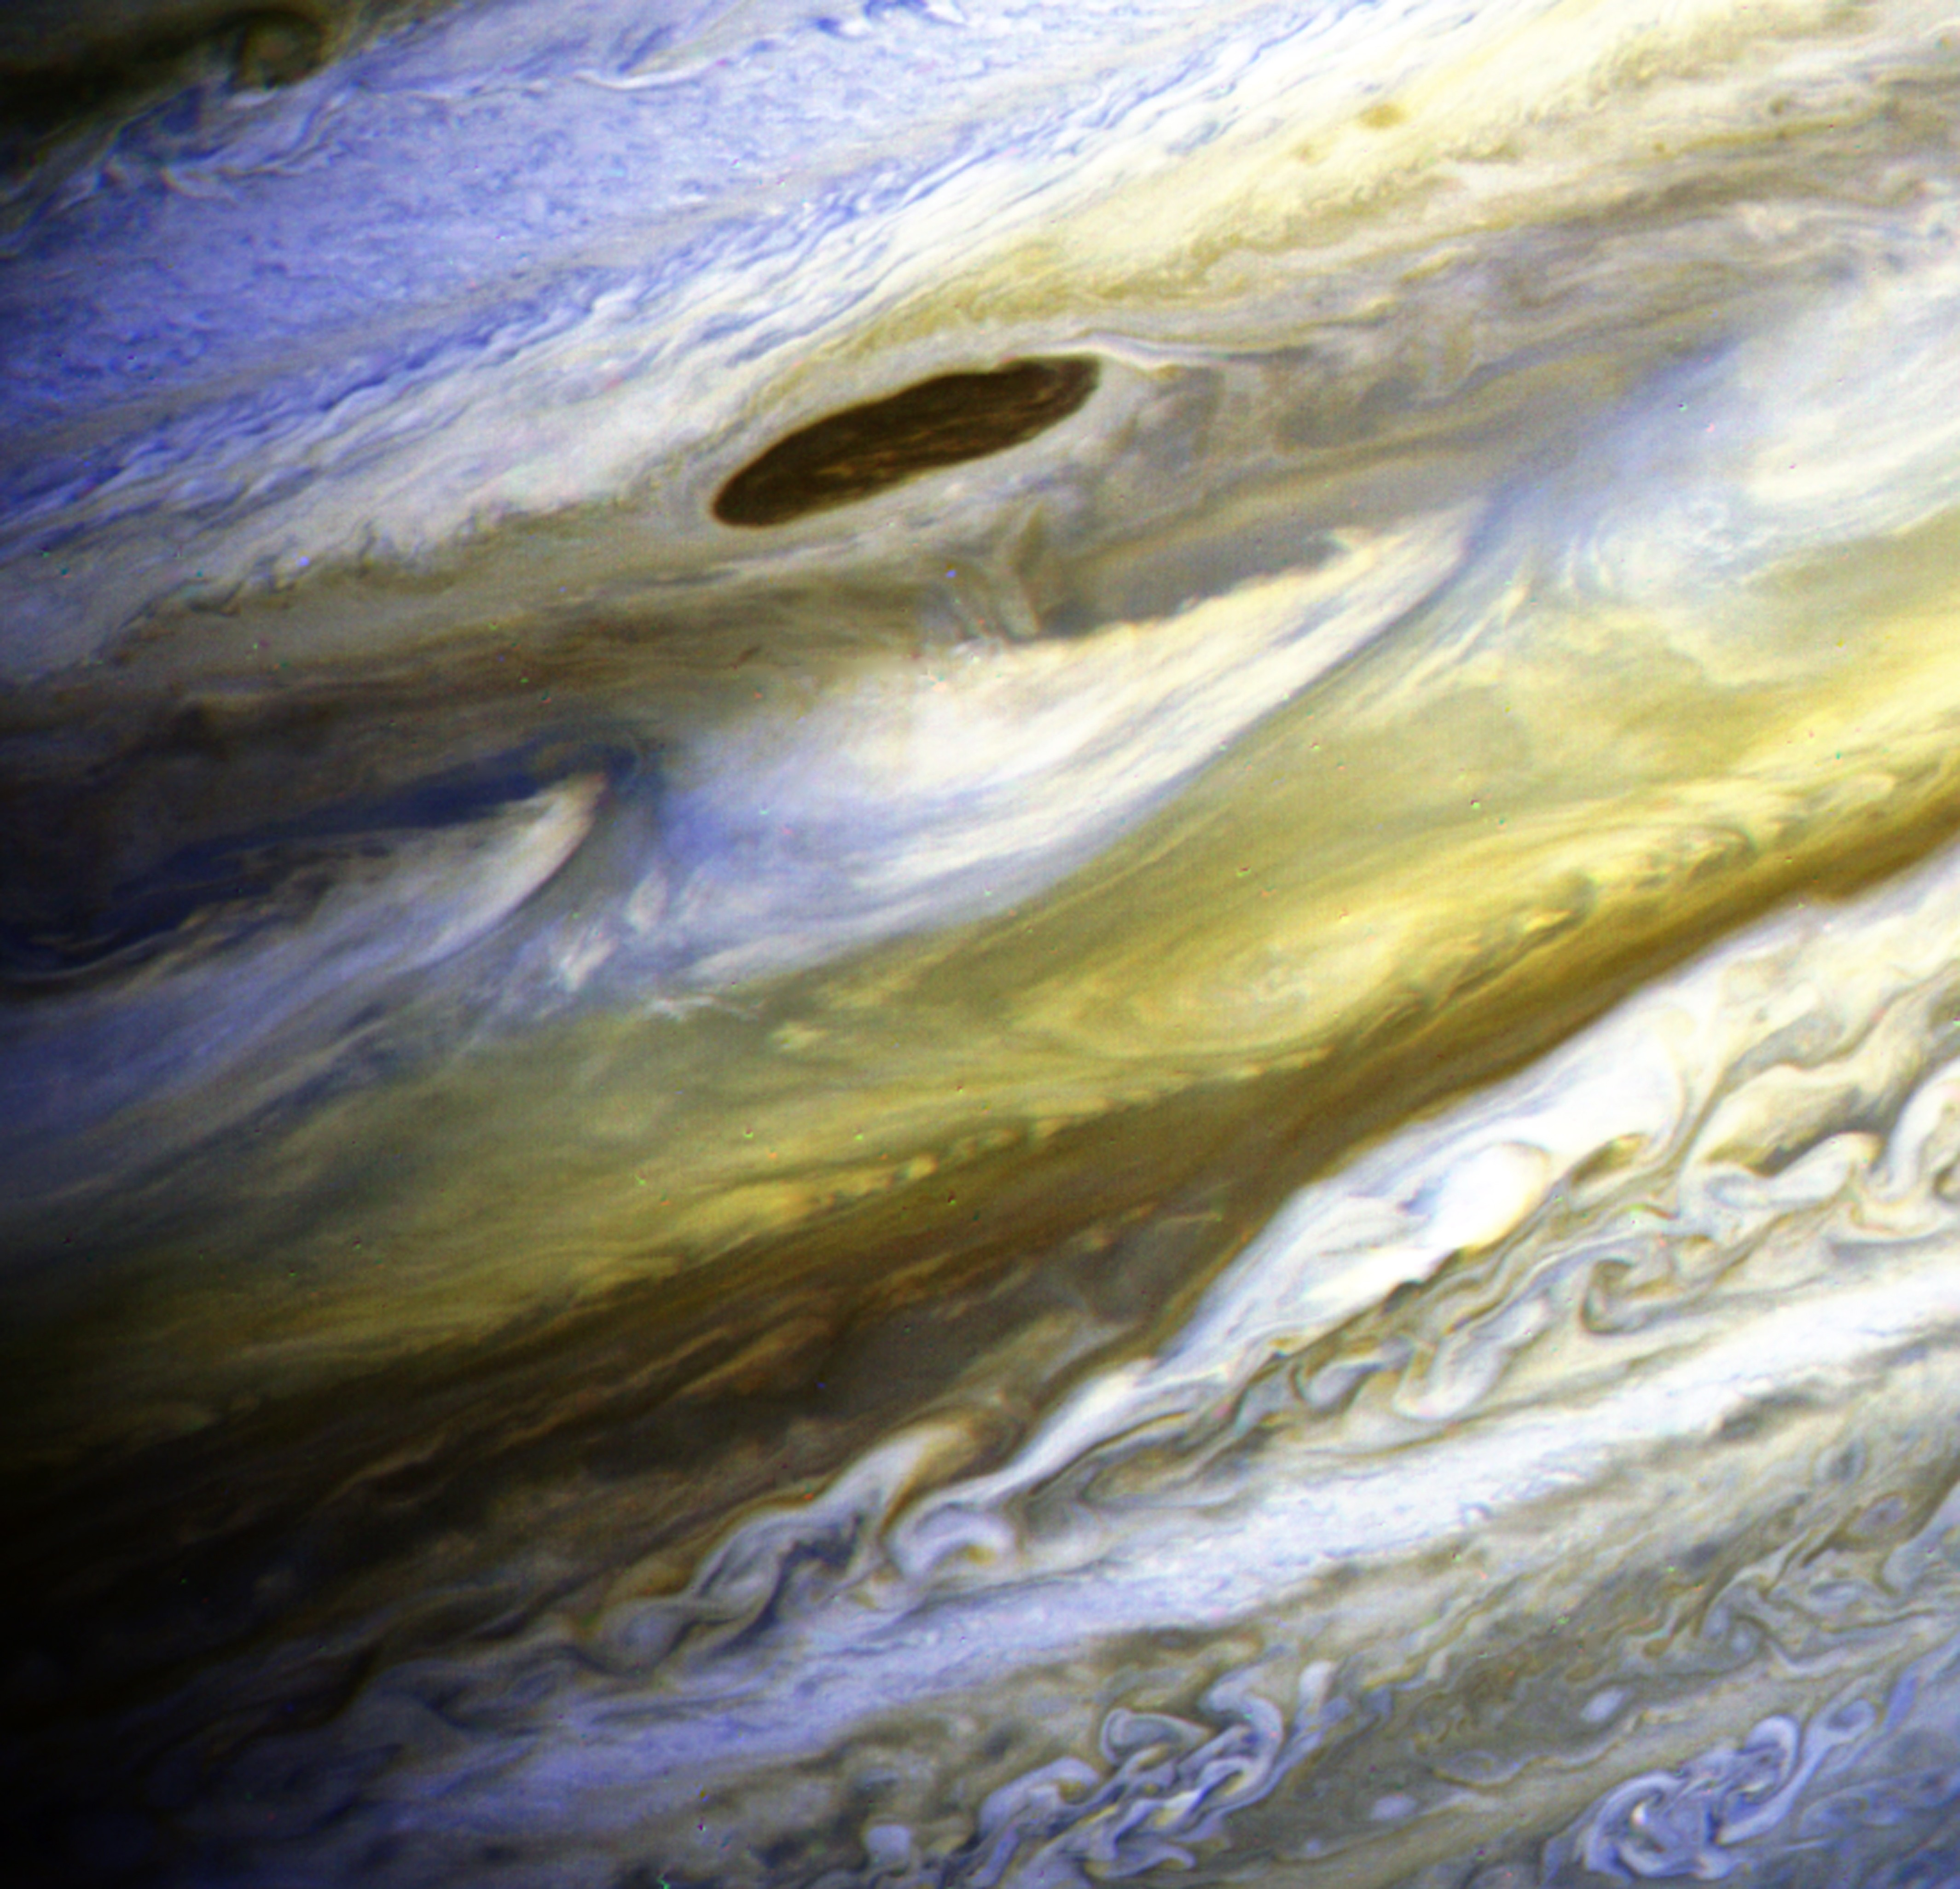 This color composite image has been processed to exaggerate color differences within the naturally colorful Jovian atmosphere on on June 28, 1979 from the Voyager 2 spacecraft.